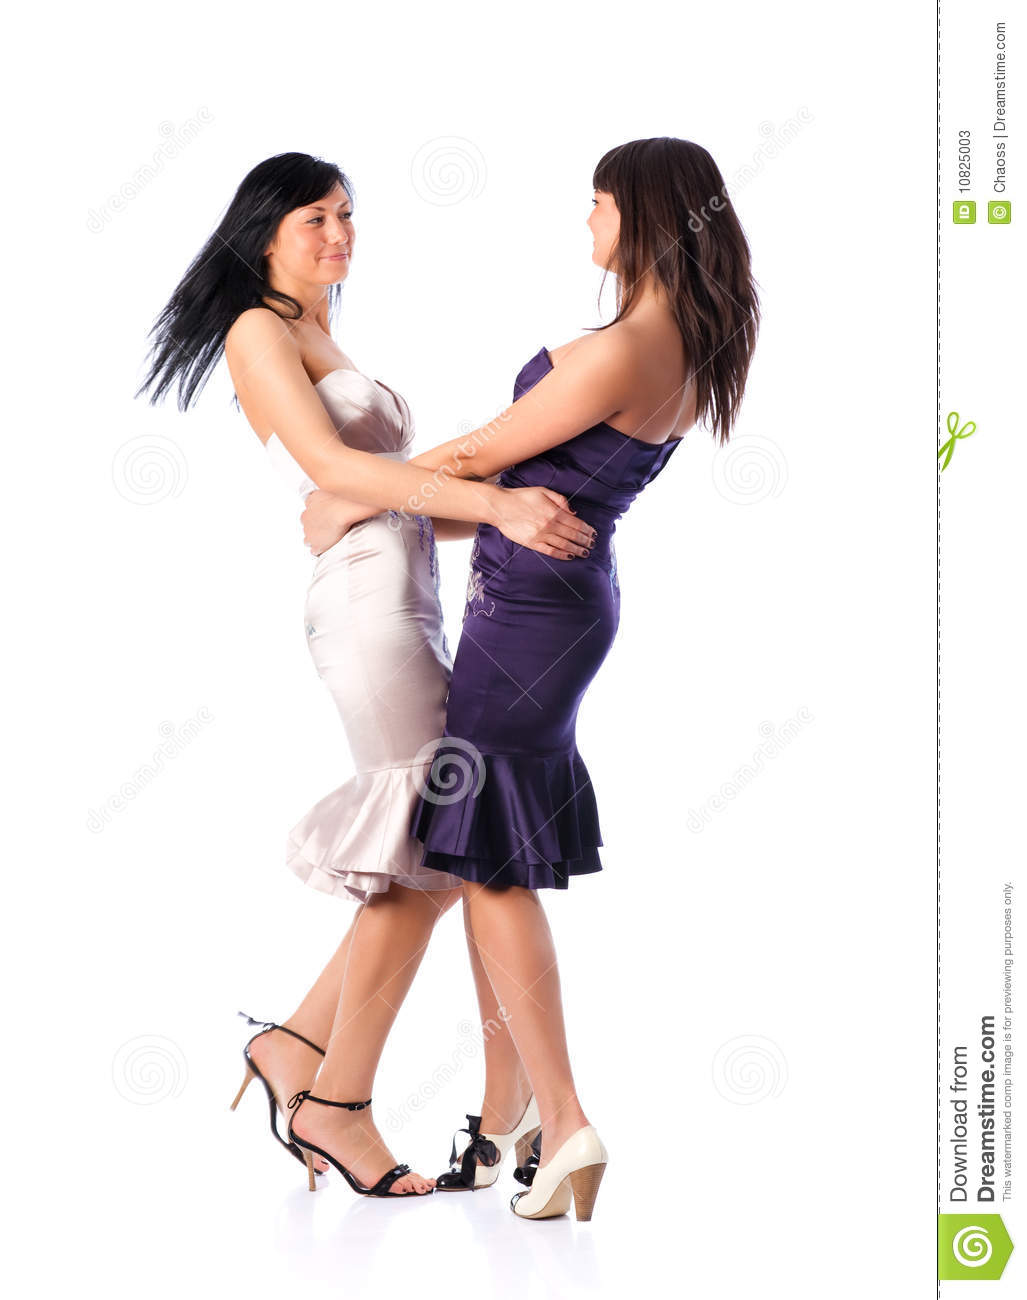 Two Young Women Dancing Stock Photos - Image: 10825003